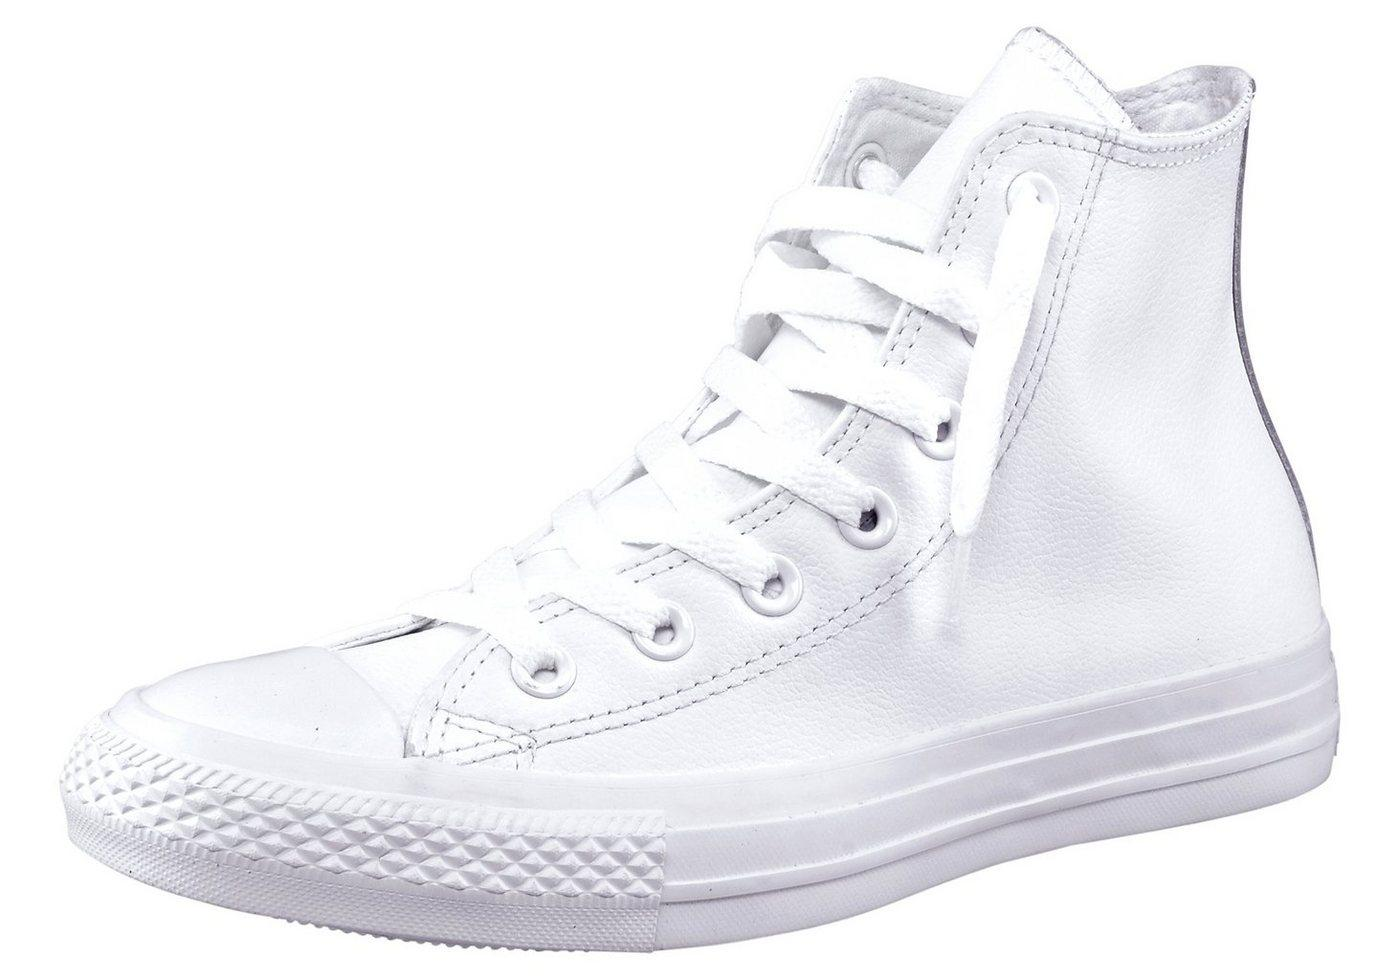 Converse »Chuck Taylor All Star Hi Monocrome Leather« Sneaker Monocrom, weiß